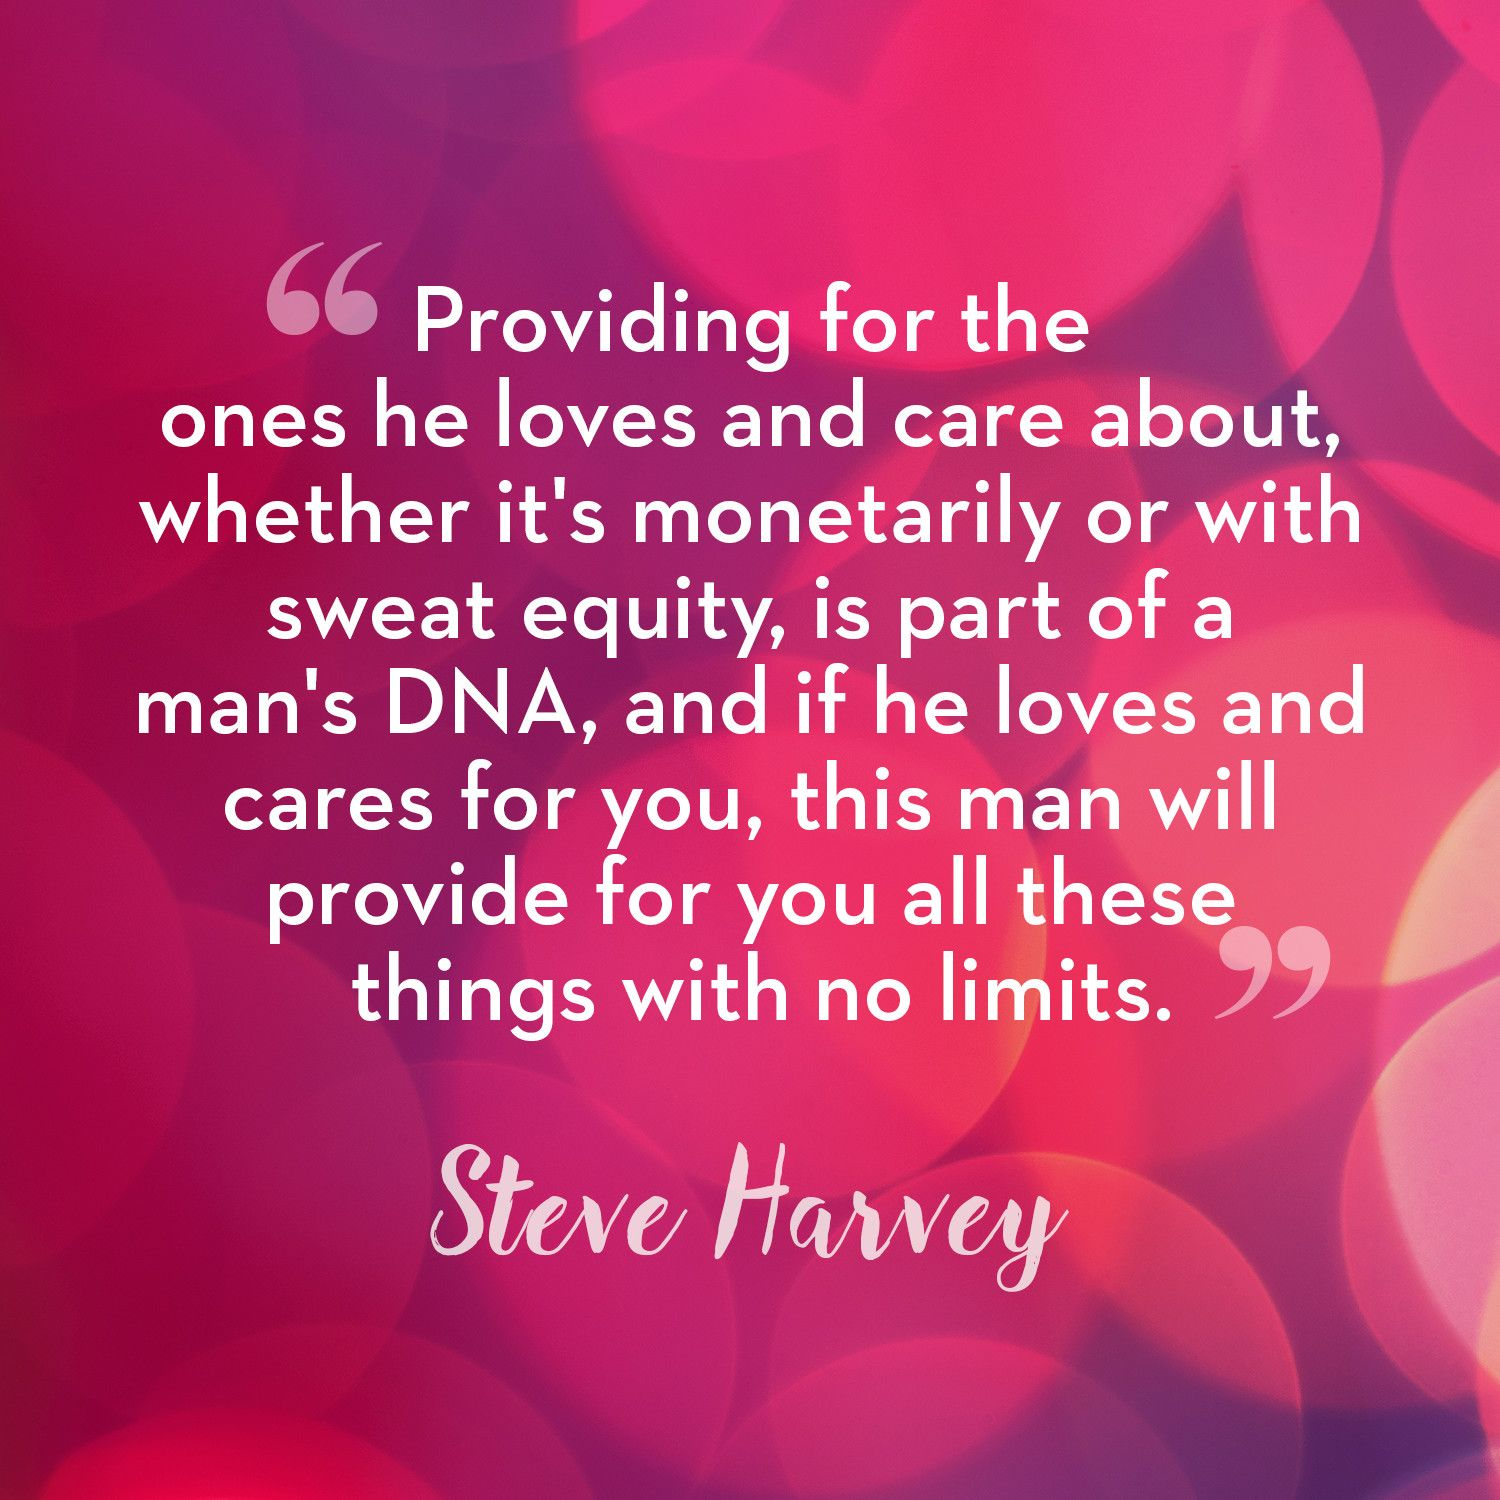 Steve Harvey Quotes 50 Best Relationship Quotes From Steve Harvey  Steve Harvey